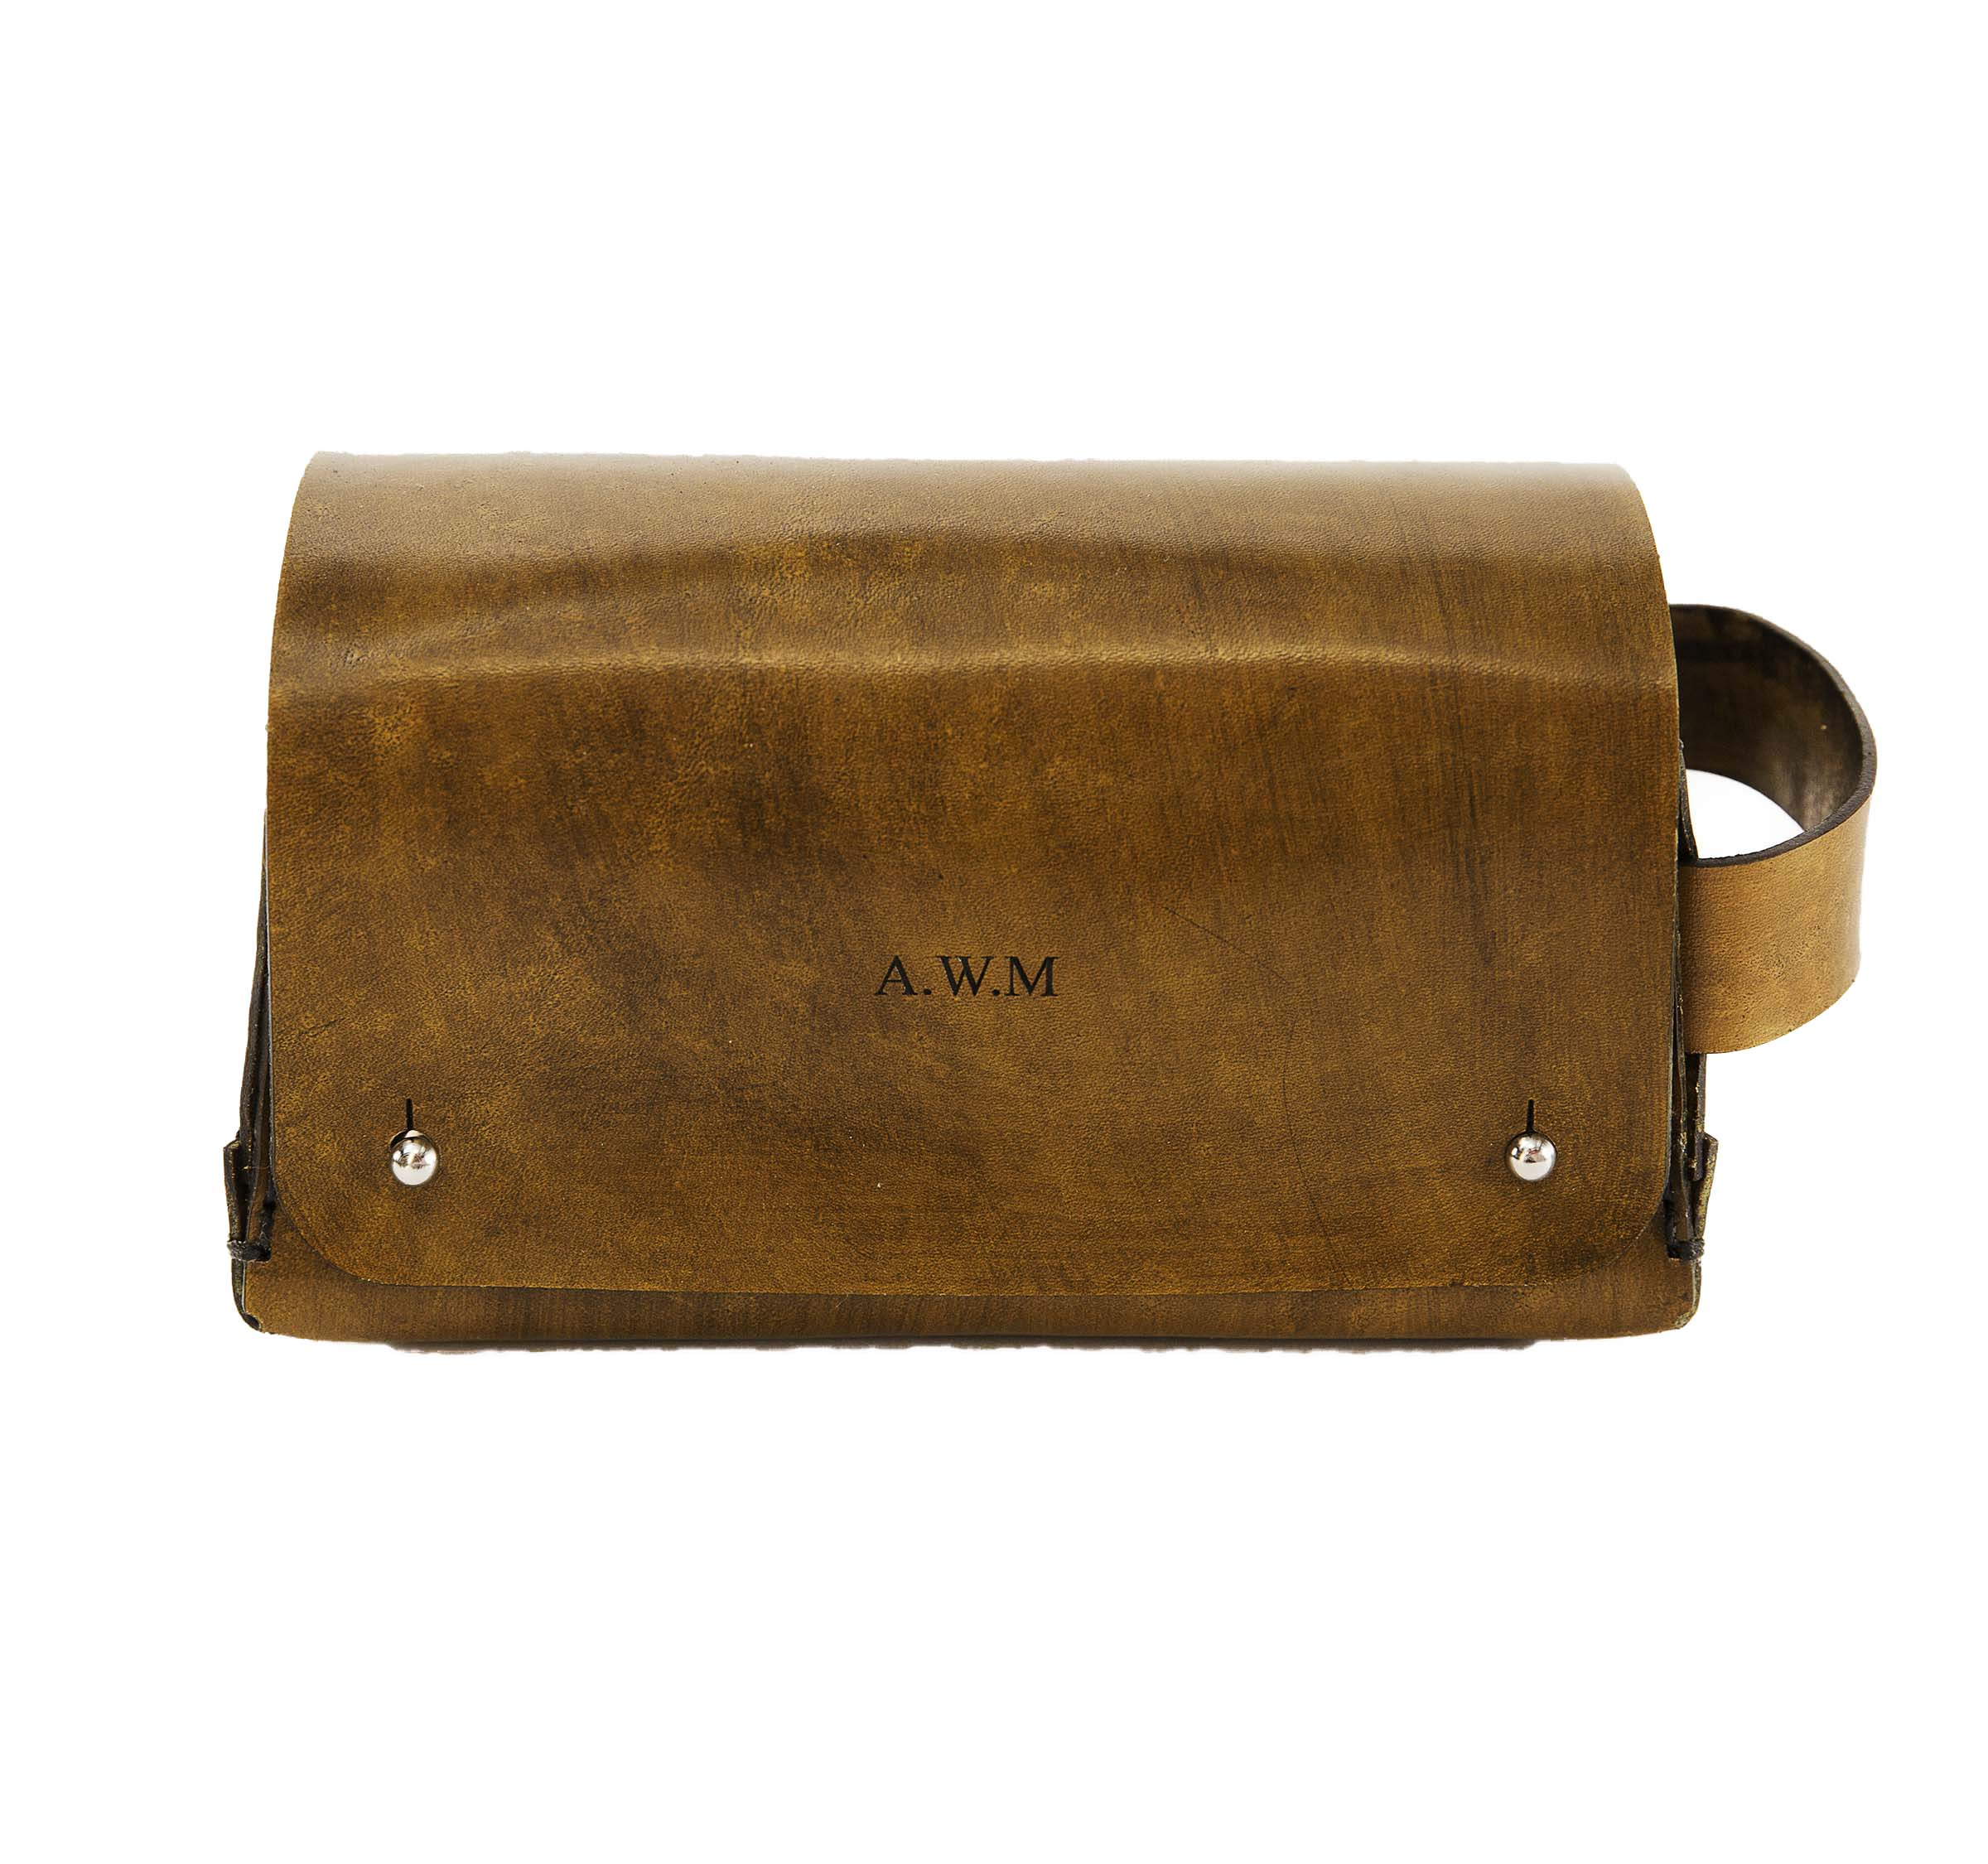 Barber - Engraved. Leather dopp bags.